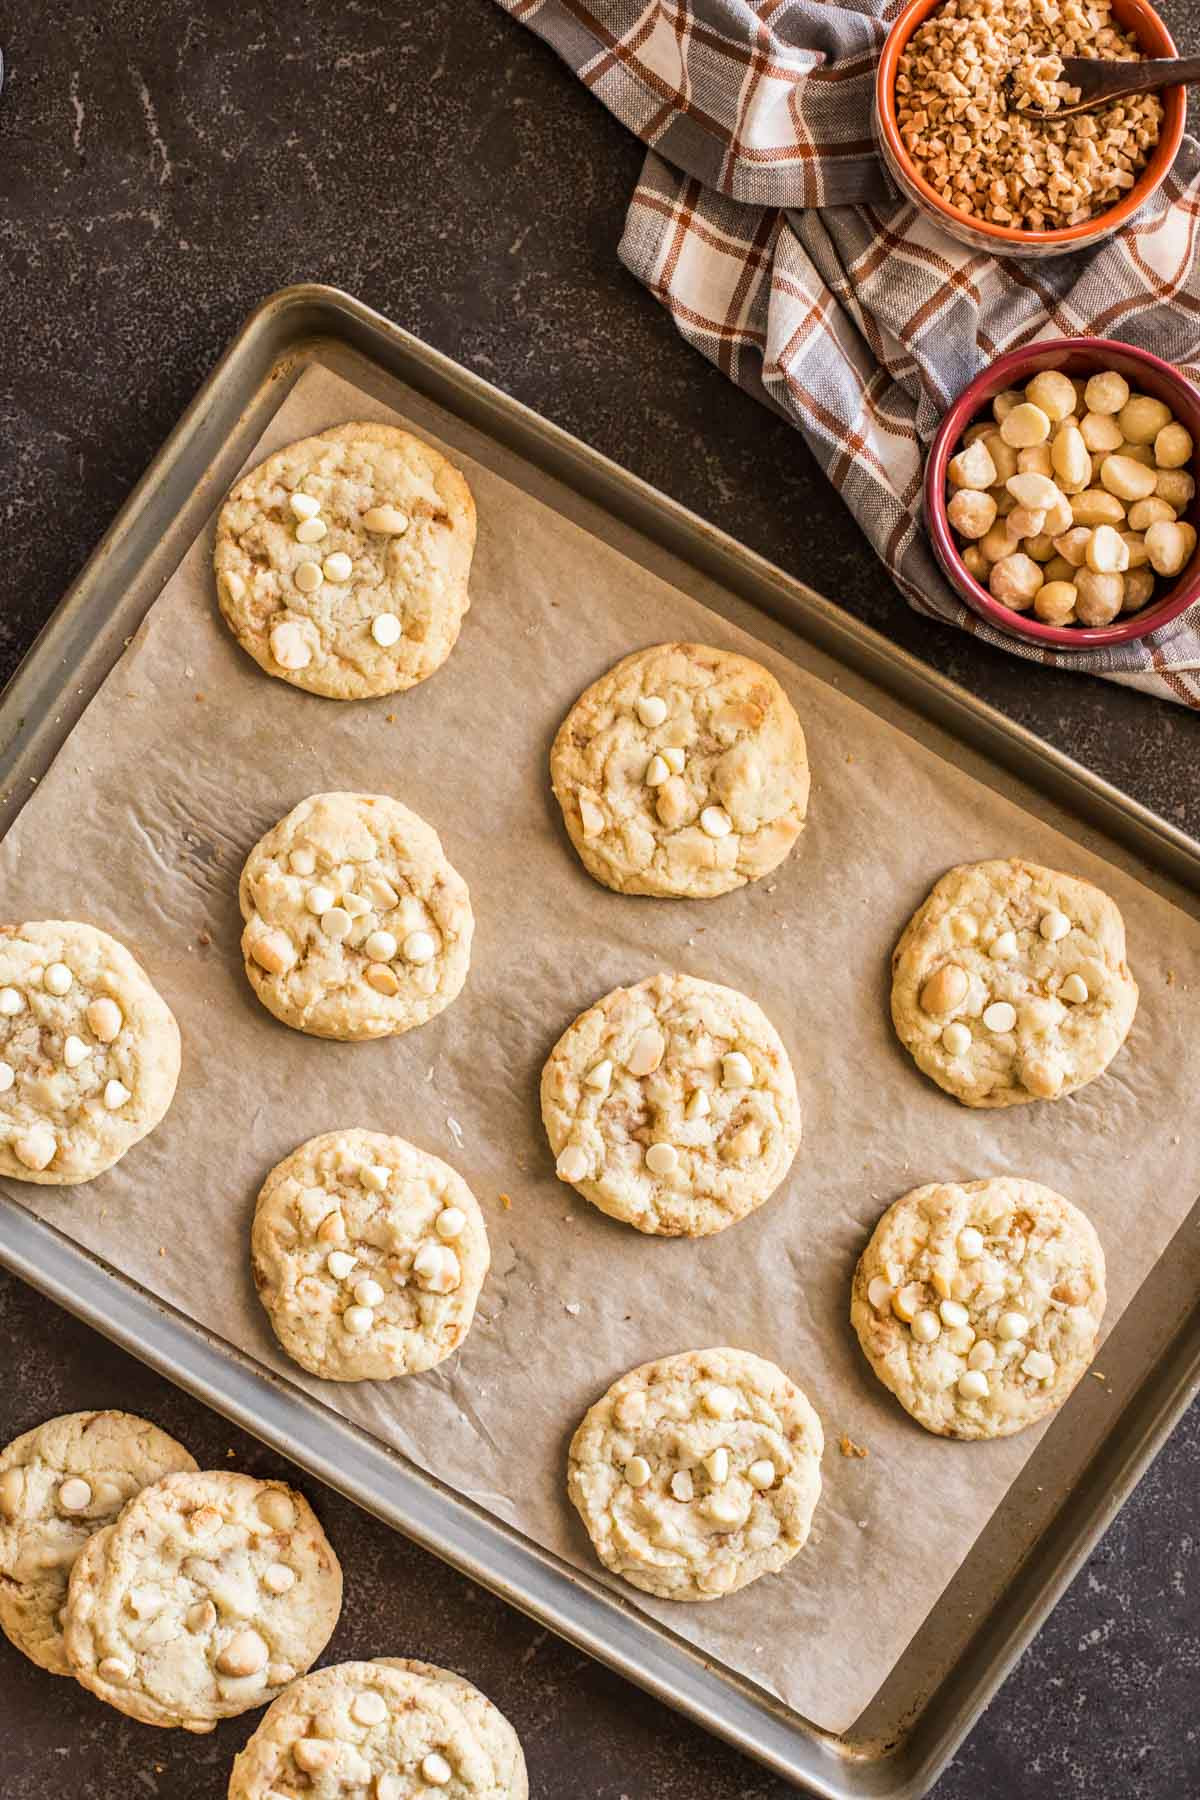 Macadamia Nut Cookies  Buttery Toffee White Chocolate Macadamia Nut Cookies